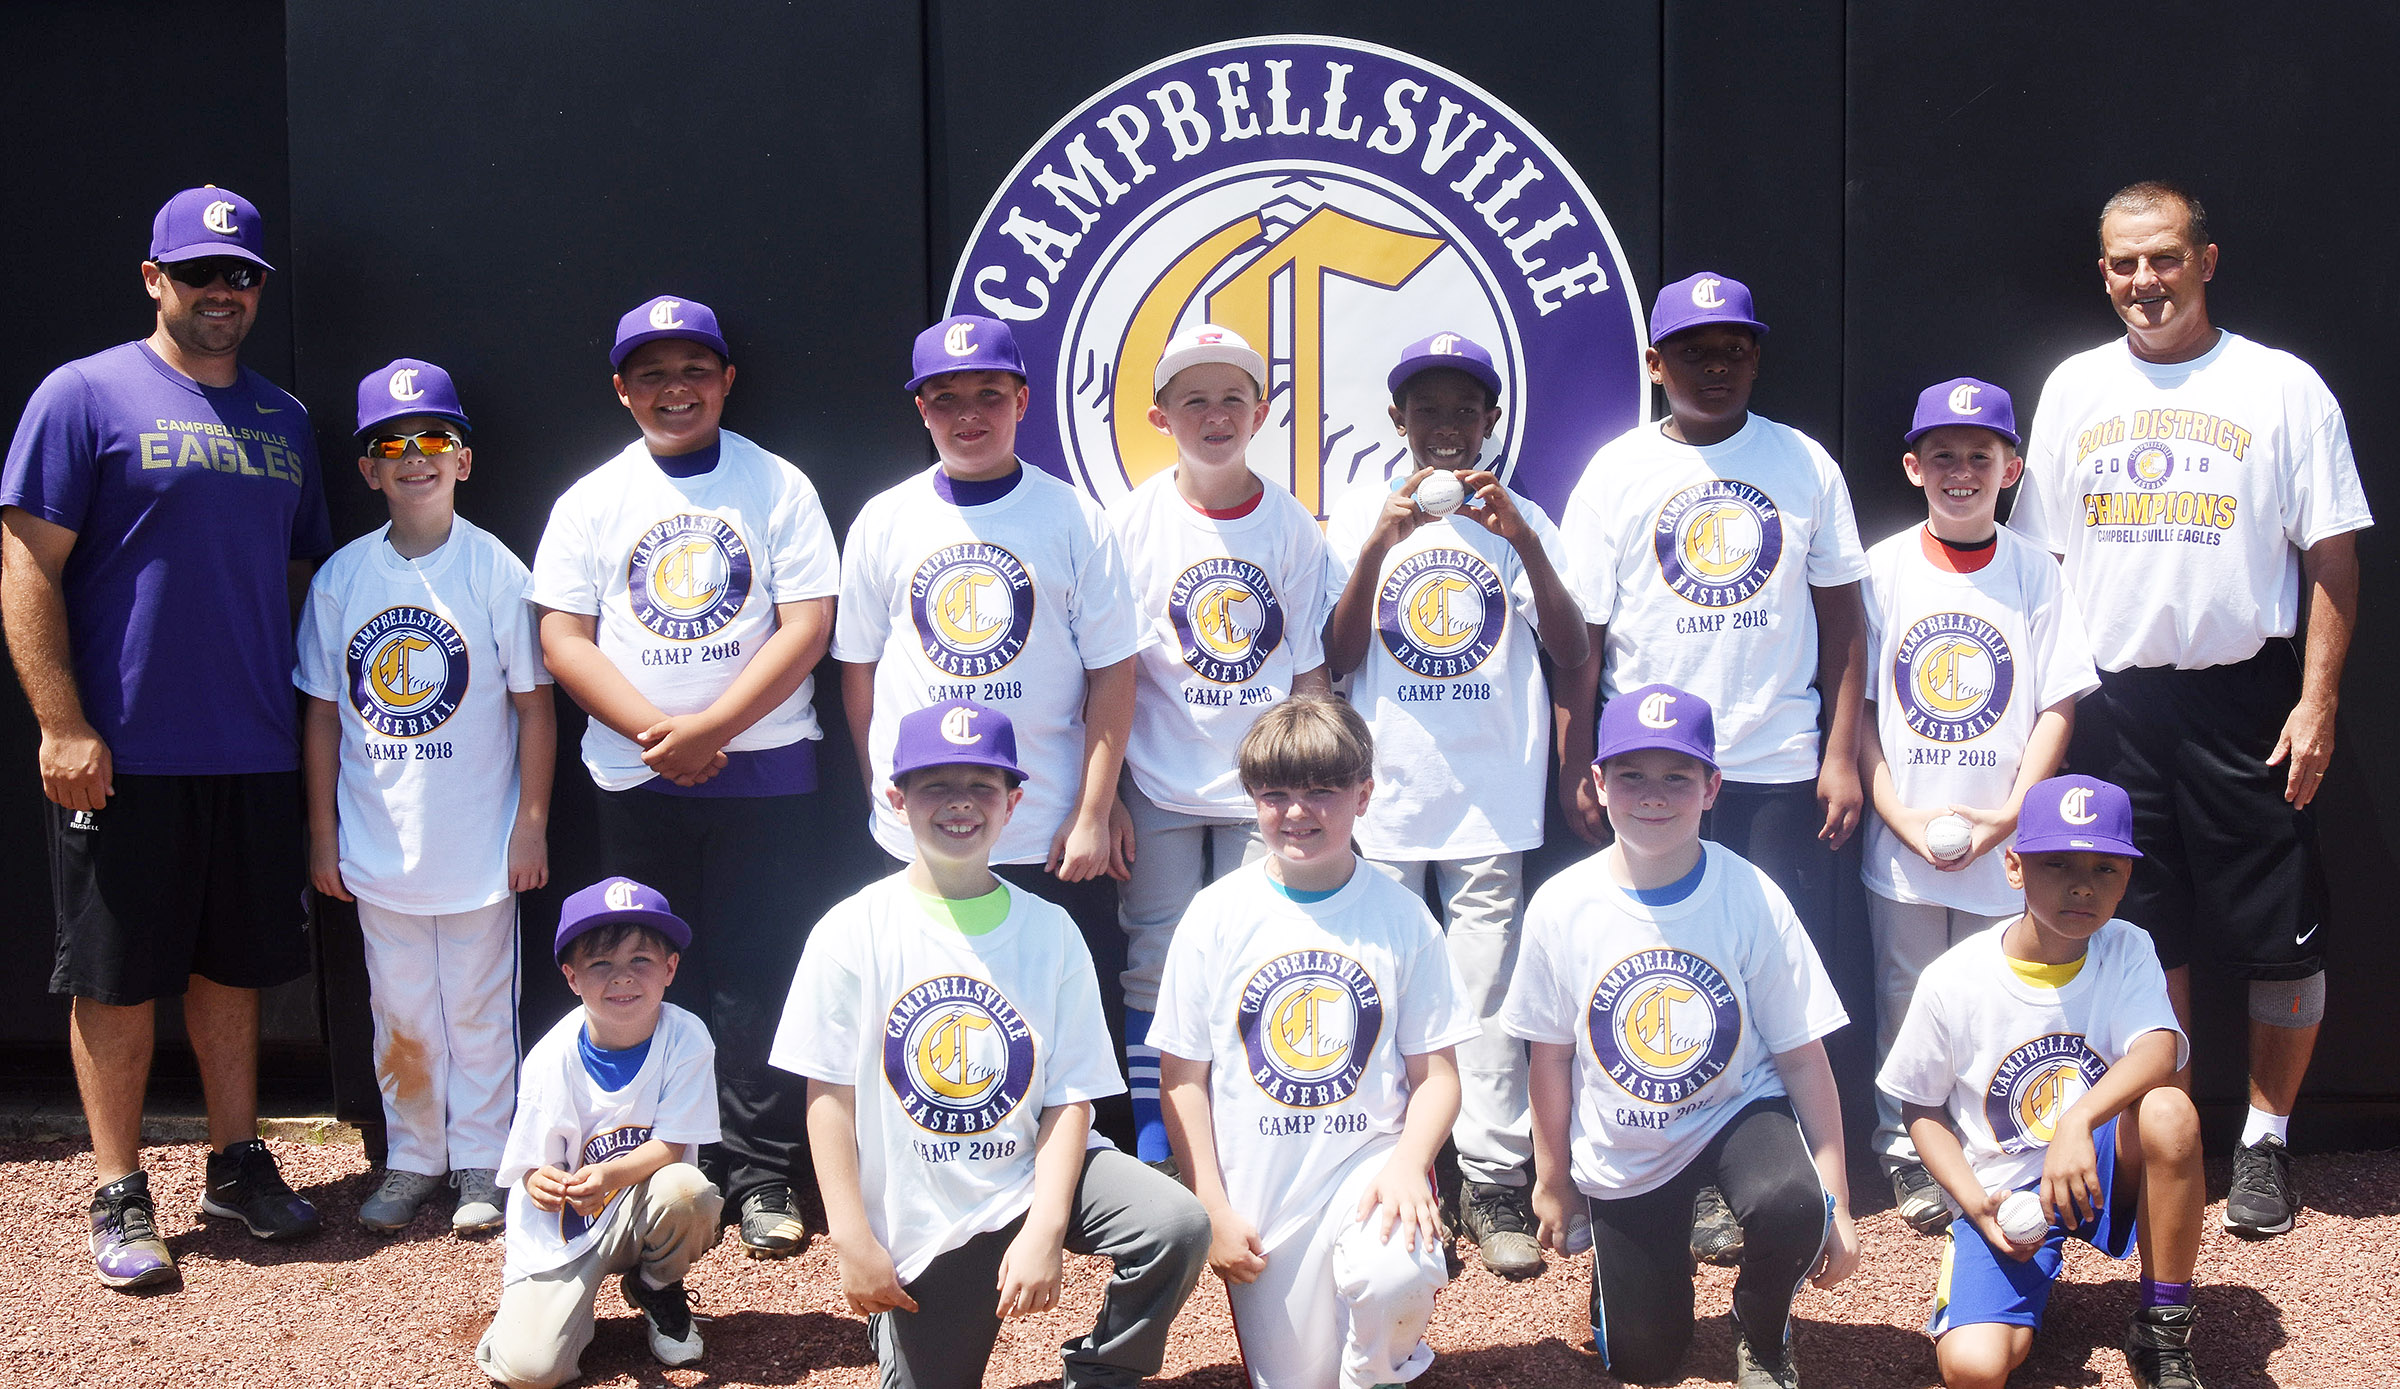 Campbellsville High School baseball team recently hosted its first youth camp. Those attending include, from left, front, Campbellsville Elementary School kindergartener Bentley Wilhoite, CES second-grader Brody Sidebottom and CES third-graders Kaleigh Wilhoite, Stephen Green and Maddox Hawkins. Back, head coach Blake Milby, CES fourth-graders Cameron Estes and Brayden Paiz, CES fifth-grader Skylar Wilhoite, Taylor County Elementary School fourth-grader Silas Young, CES third-grader Jaron Johnson, CES fifth-grader KeKe Miller, CES third-grader Lanigan Price and assistant coach Lynn Kearney.